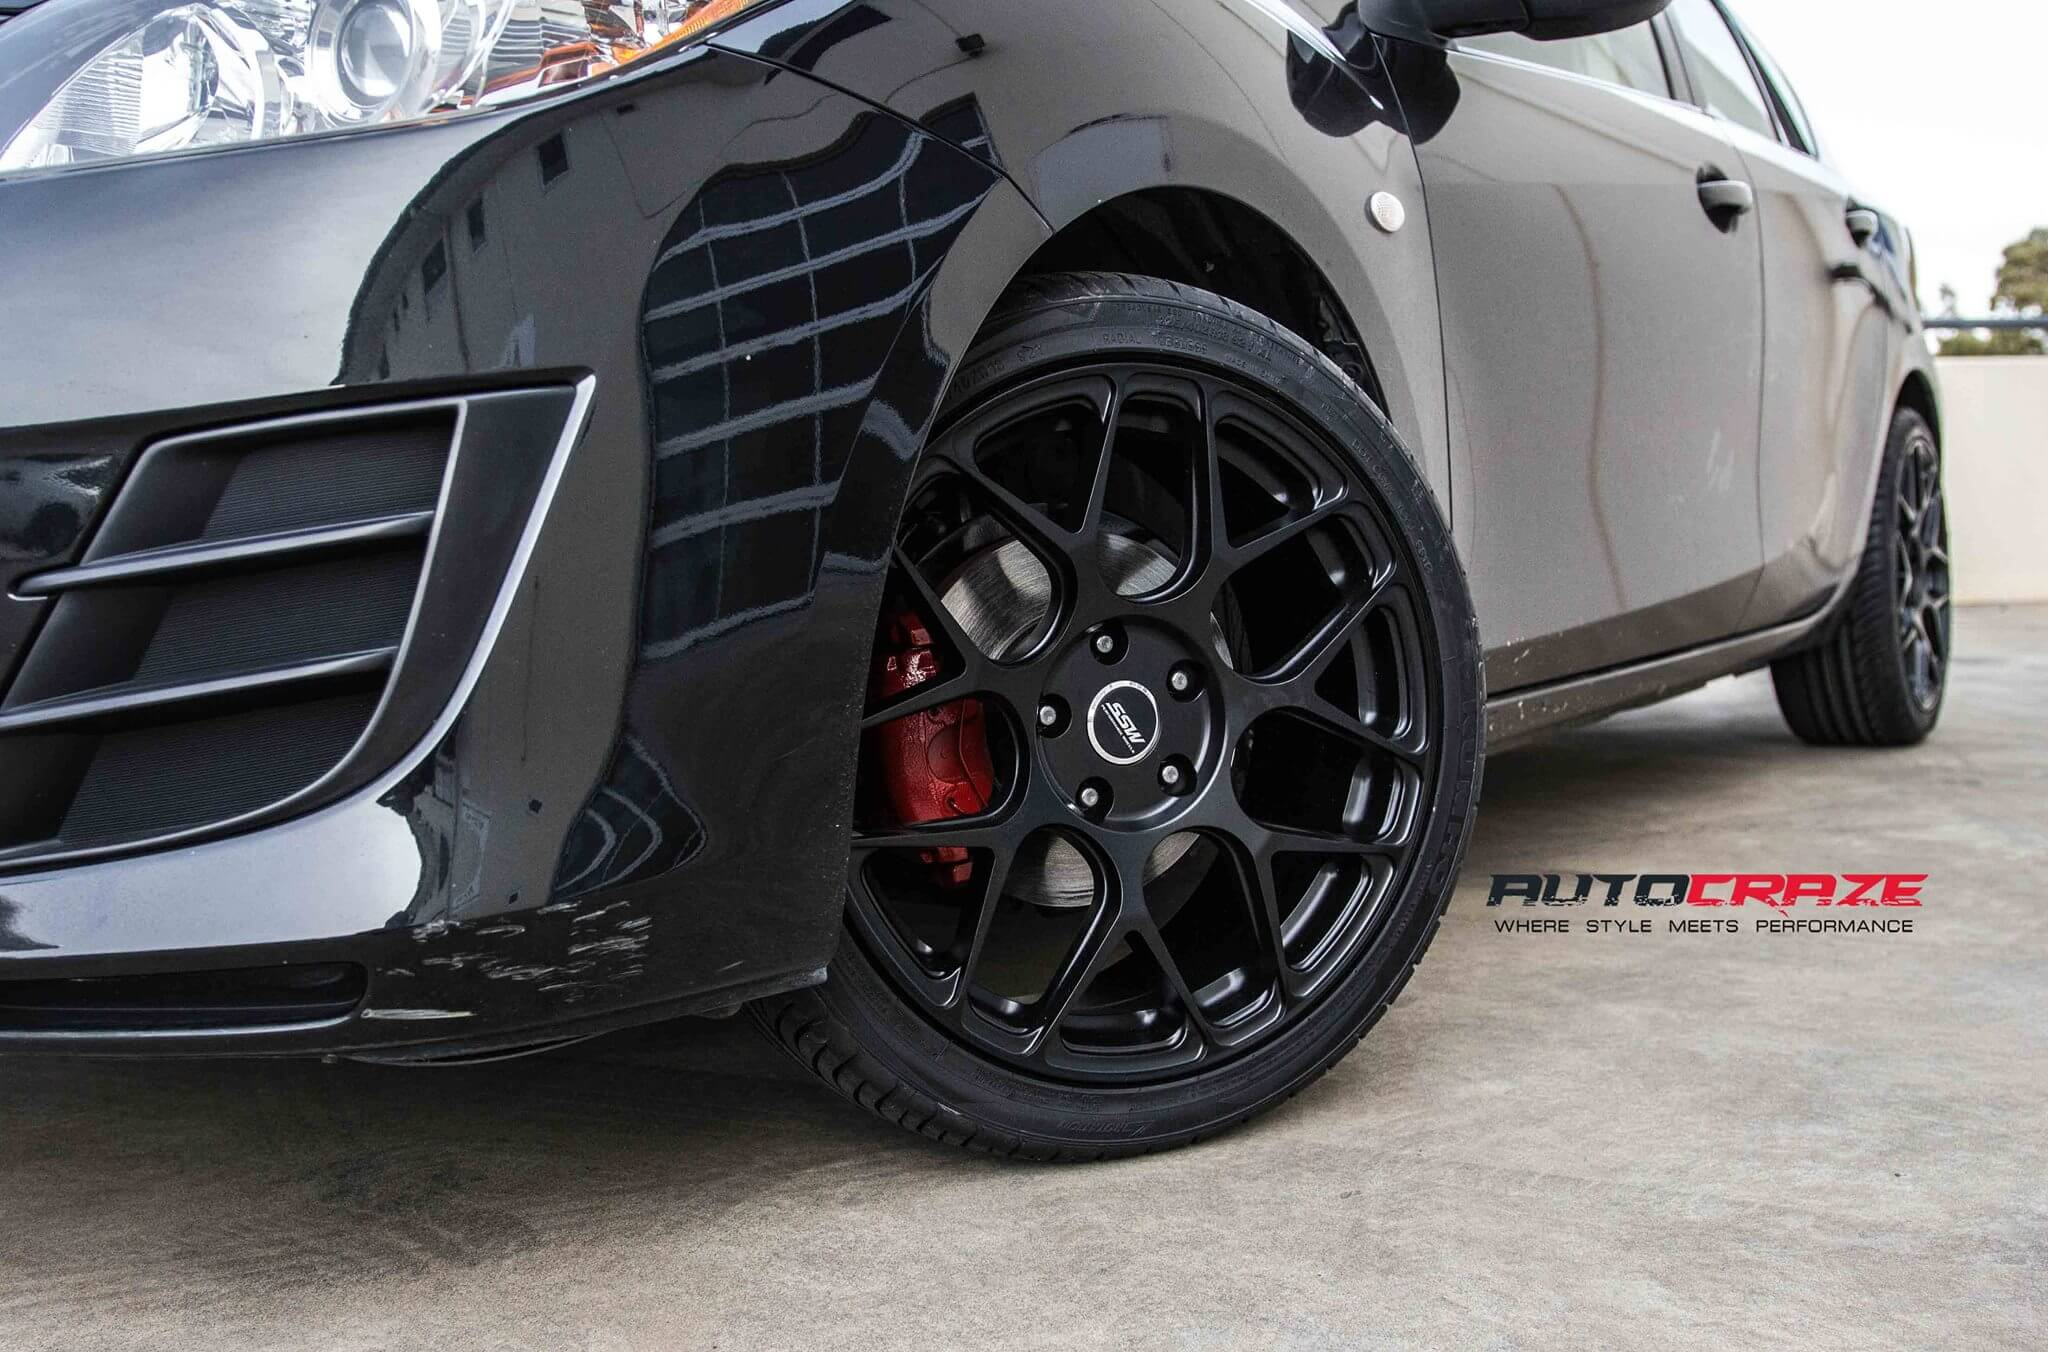 ... Mazda 3 Rims For Sale. Mazda_3_rims_for_sale_AutoCraze_2017.  Mazda_3_rims_for_sale_AutoCraze_2017. Mazda_3_rims_for_sale_AutoCraze_2017